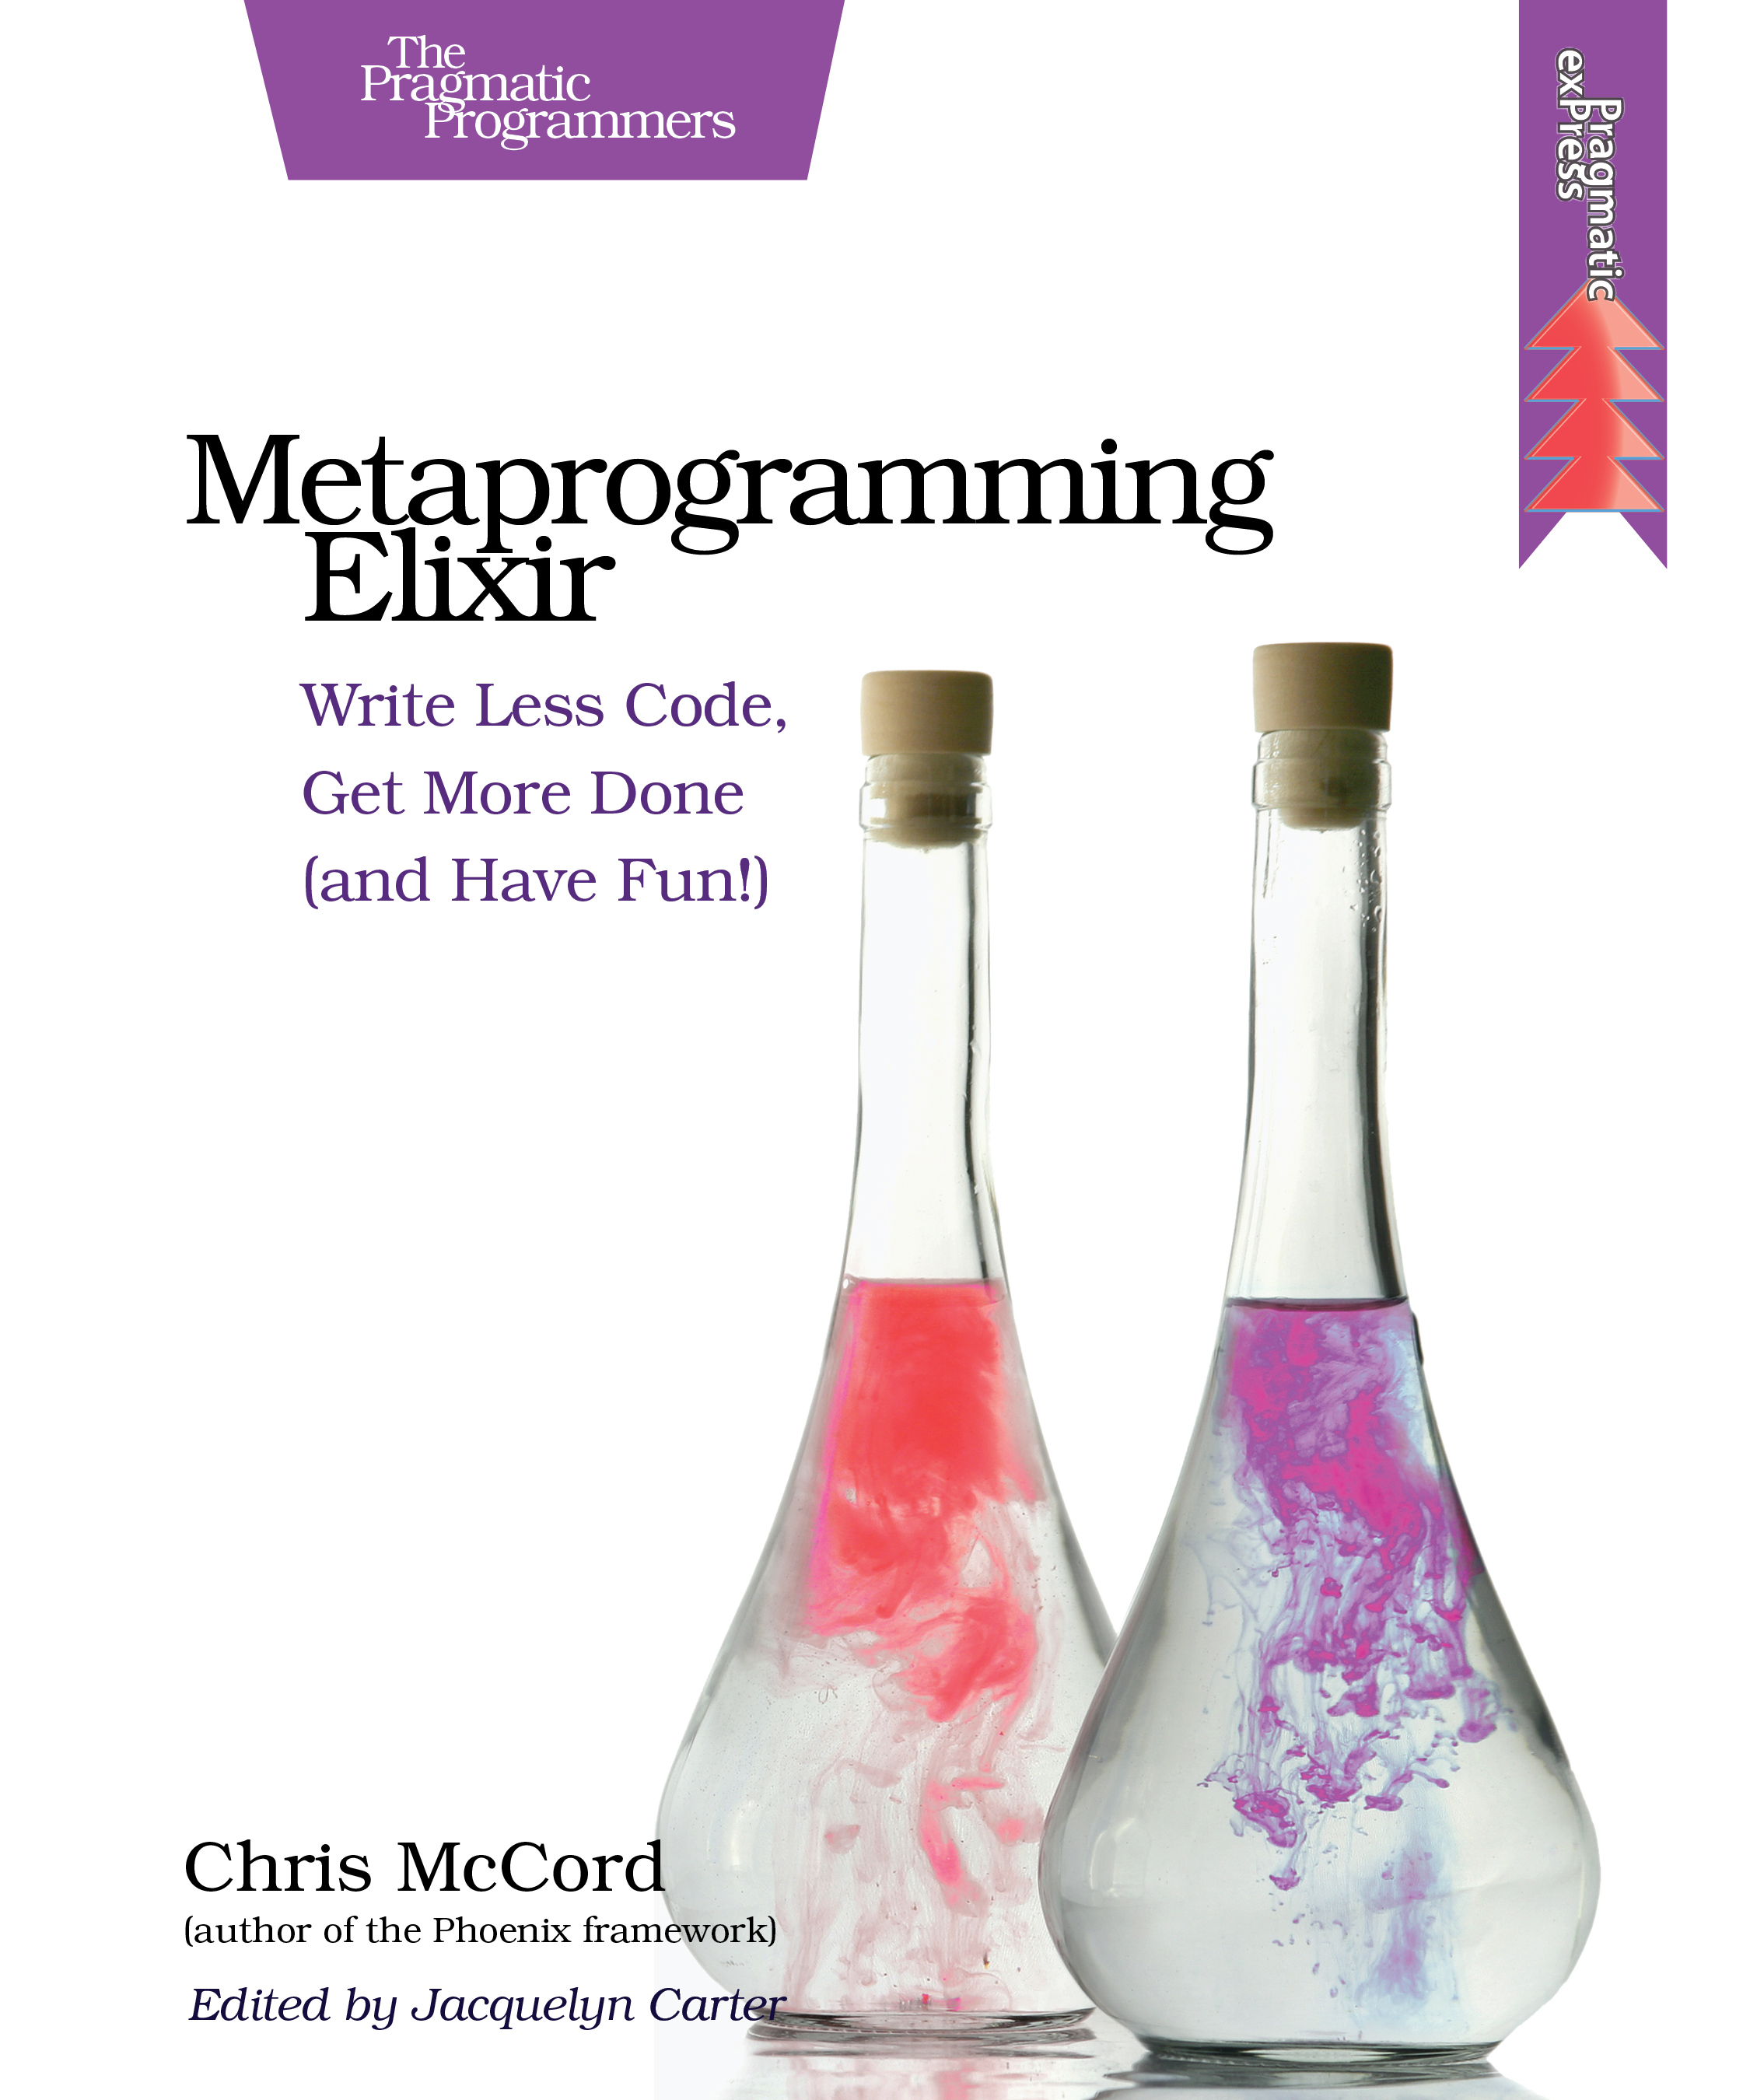 Cover of the book Metaprogramming Elixir